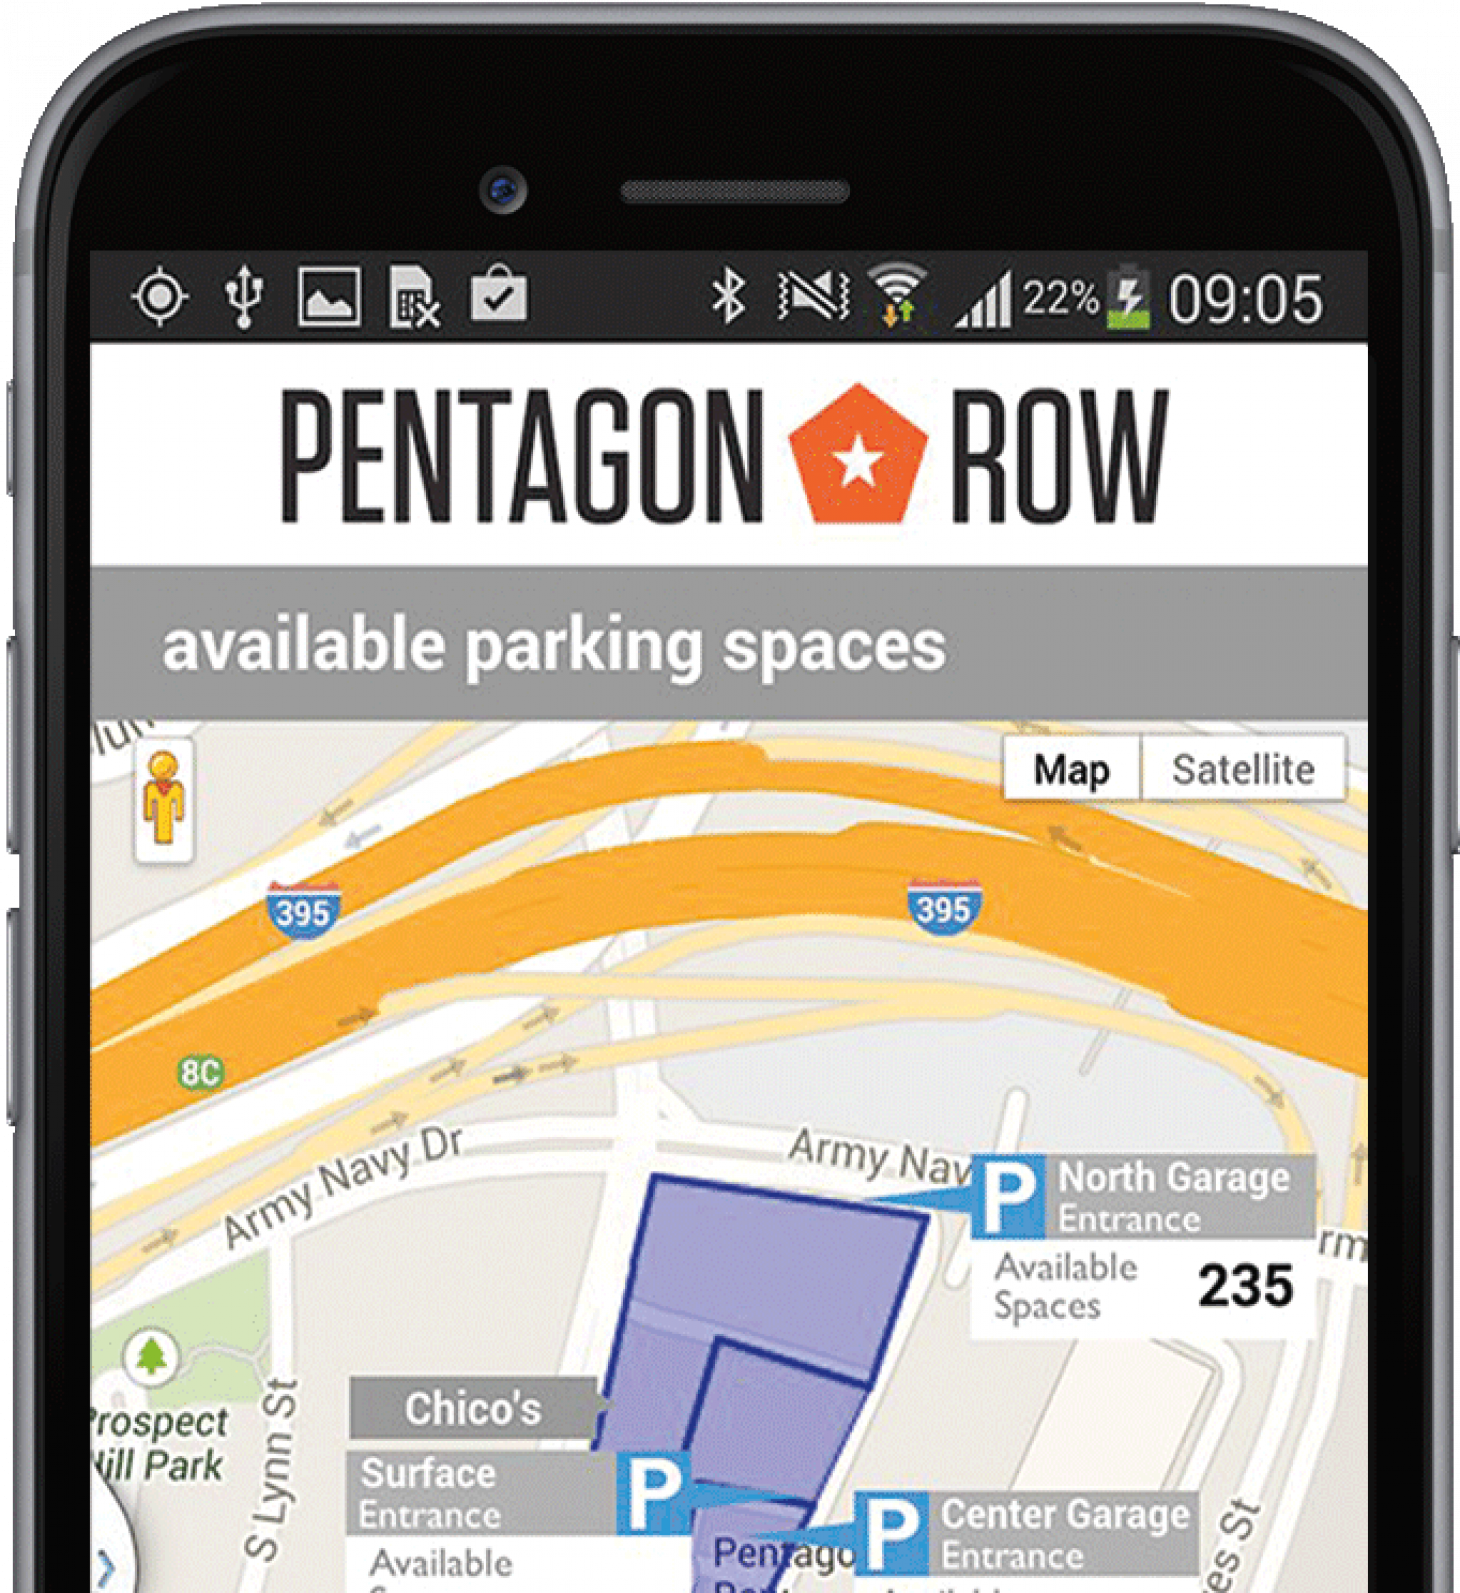 Federal Realty Investment Trust Has Created What It Calls One Of The Most  Advanced And Sustainable Parking Facilities In The U.S. At Its Pentagon Row  ...